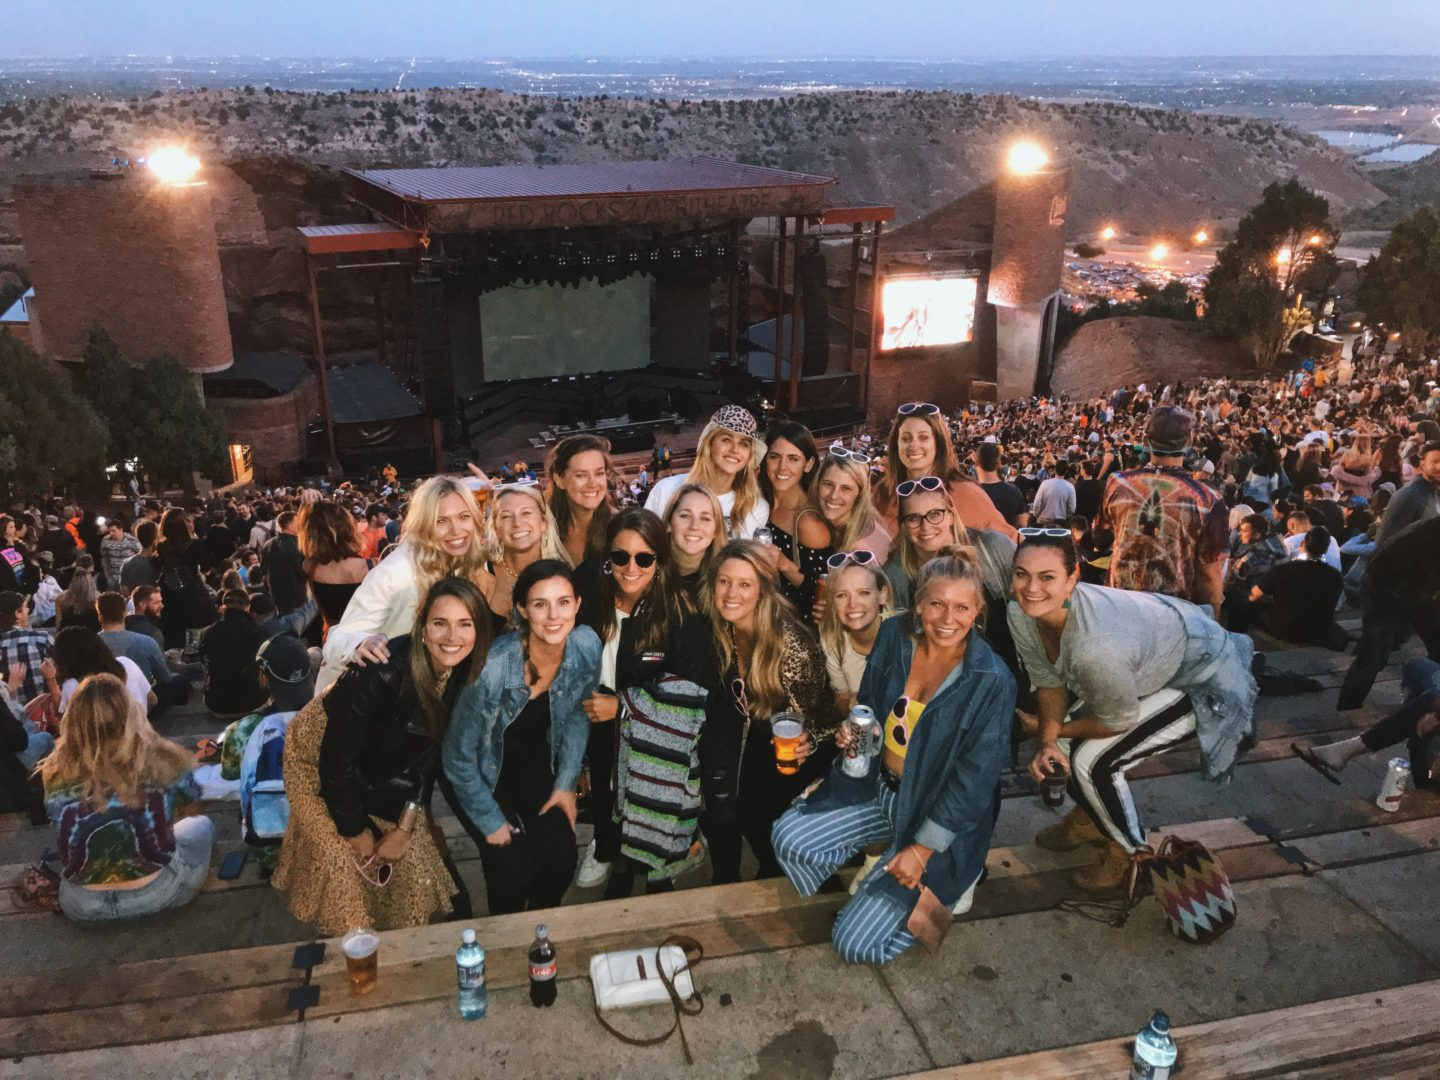 The perfect bachelorette weekend activity right outside of Denver. Visit the Red Rocks Amphitheater and see one of your favorite bands while overlooking the red rocks at sunset.